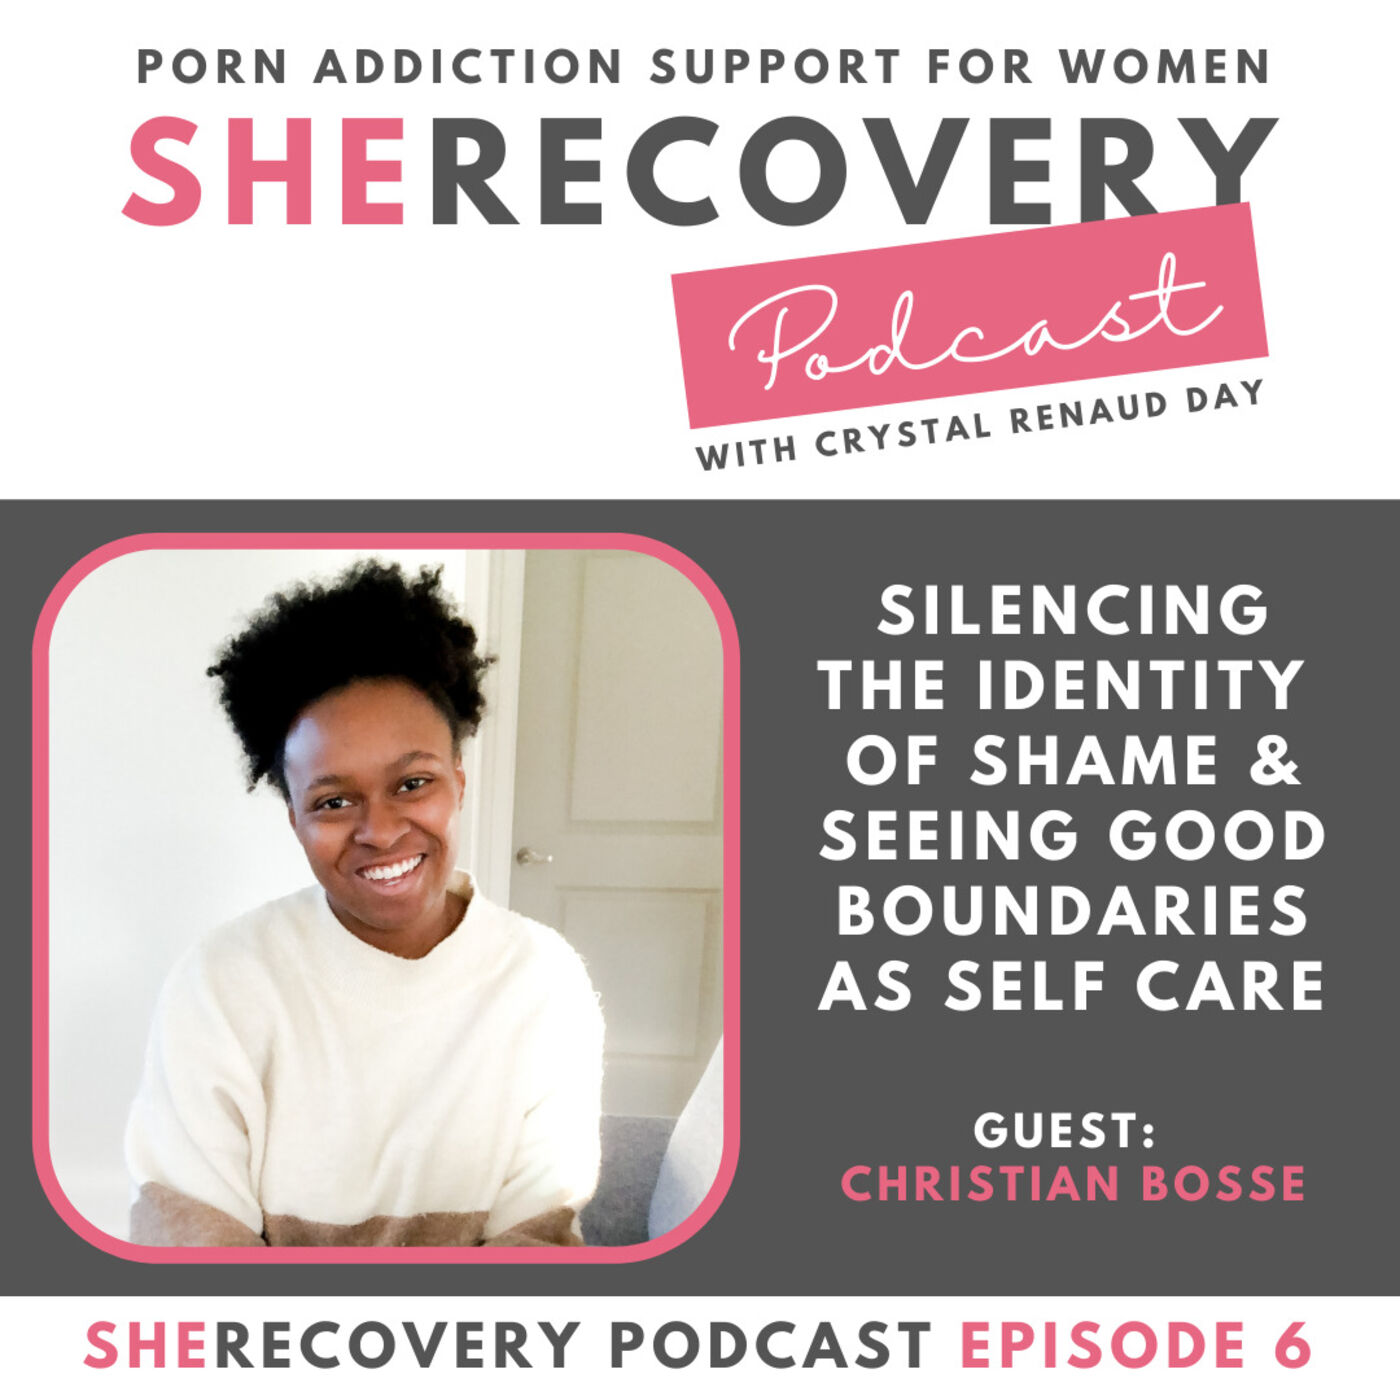 S1 E6: Christian Bosse - Silencing the Identity of Shame & Seeing Good Boundaries as Self Care